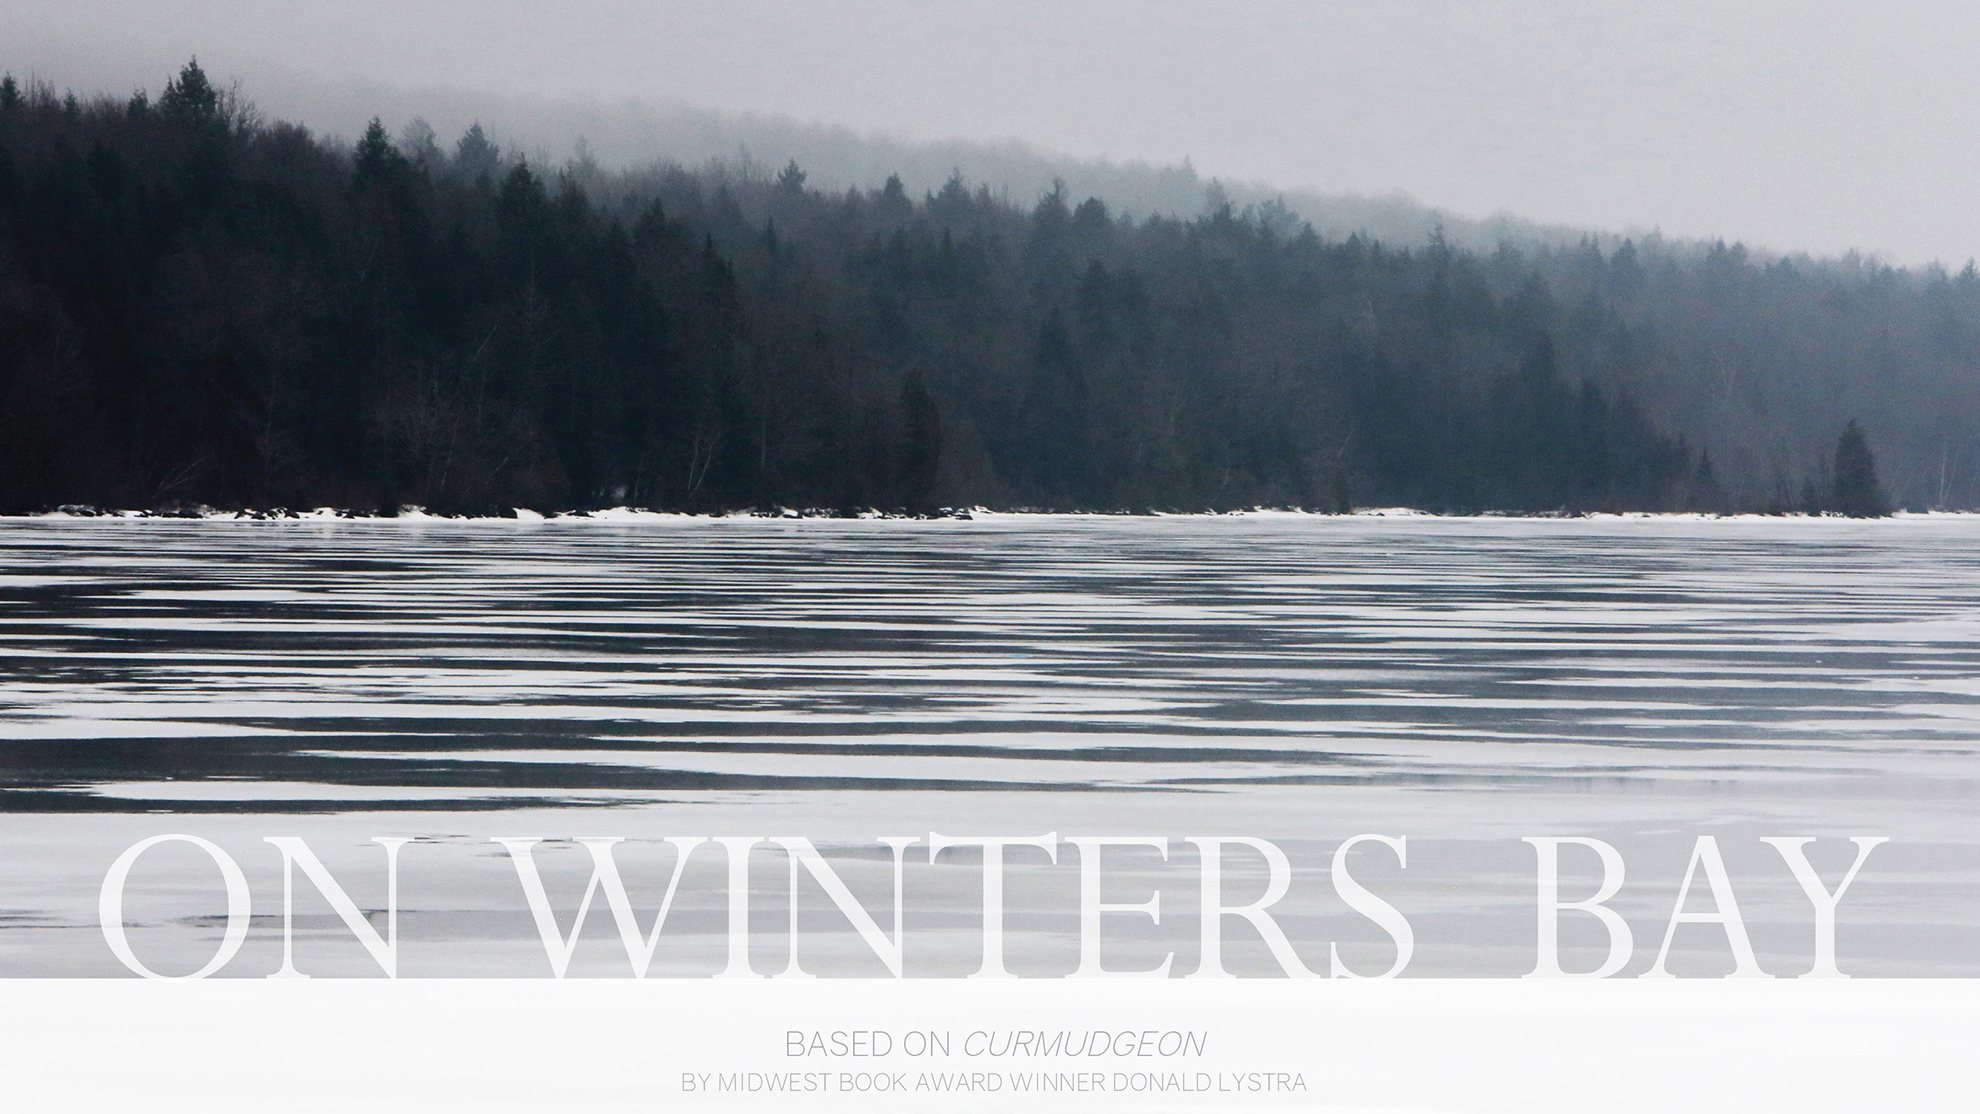 On Winters Bay - A Film by Michael Bofshever - Based on Curmudgeon by Midwest Book Award Winner Donald Lystra